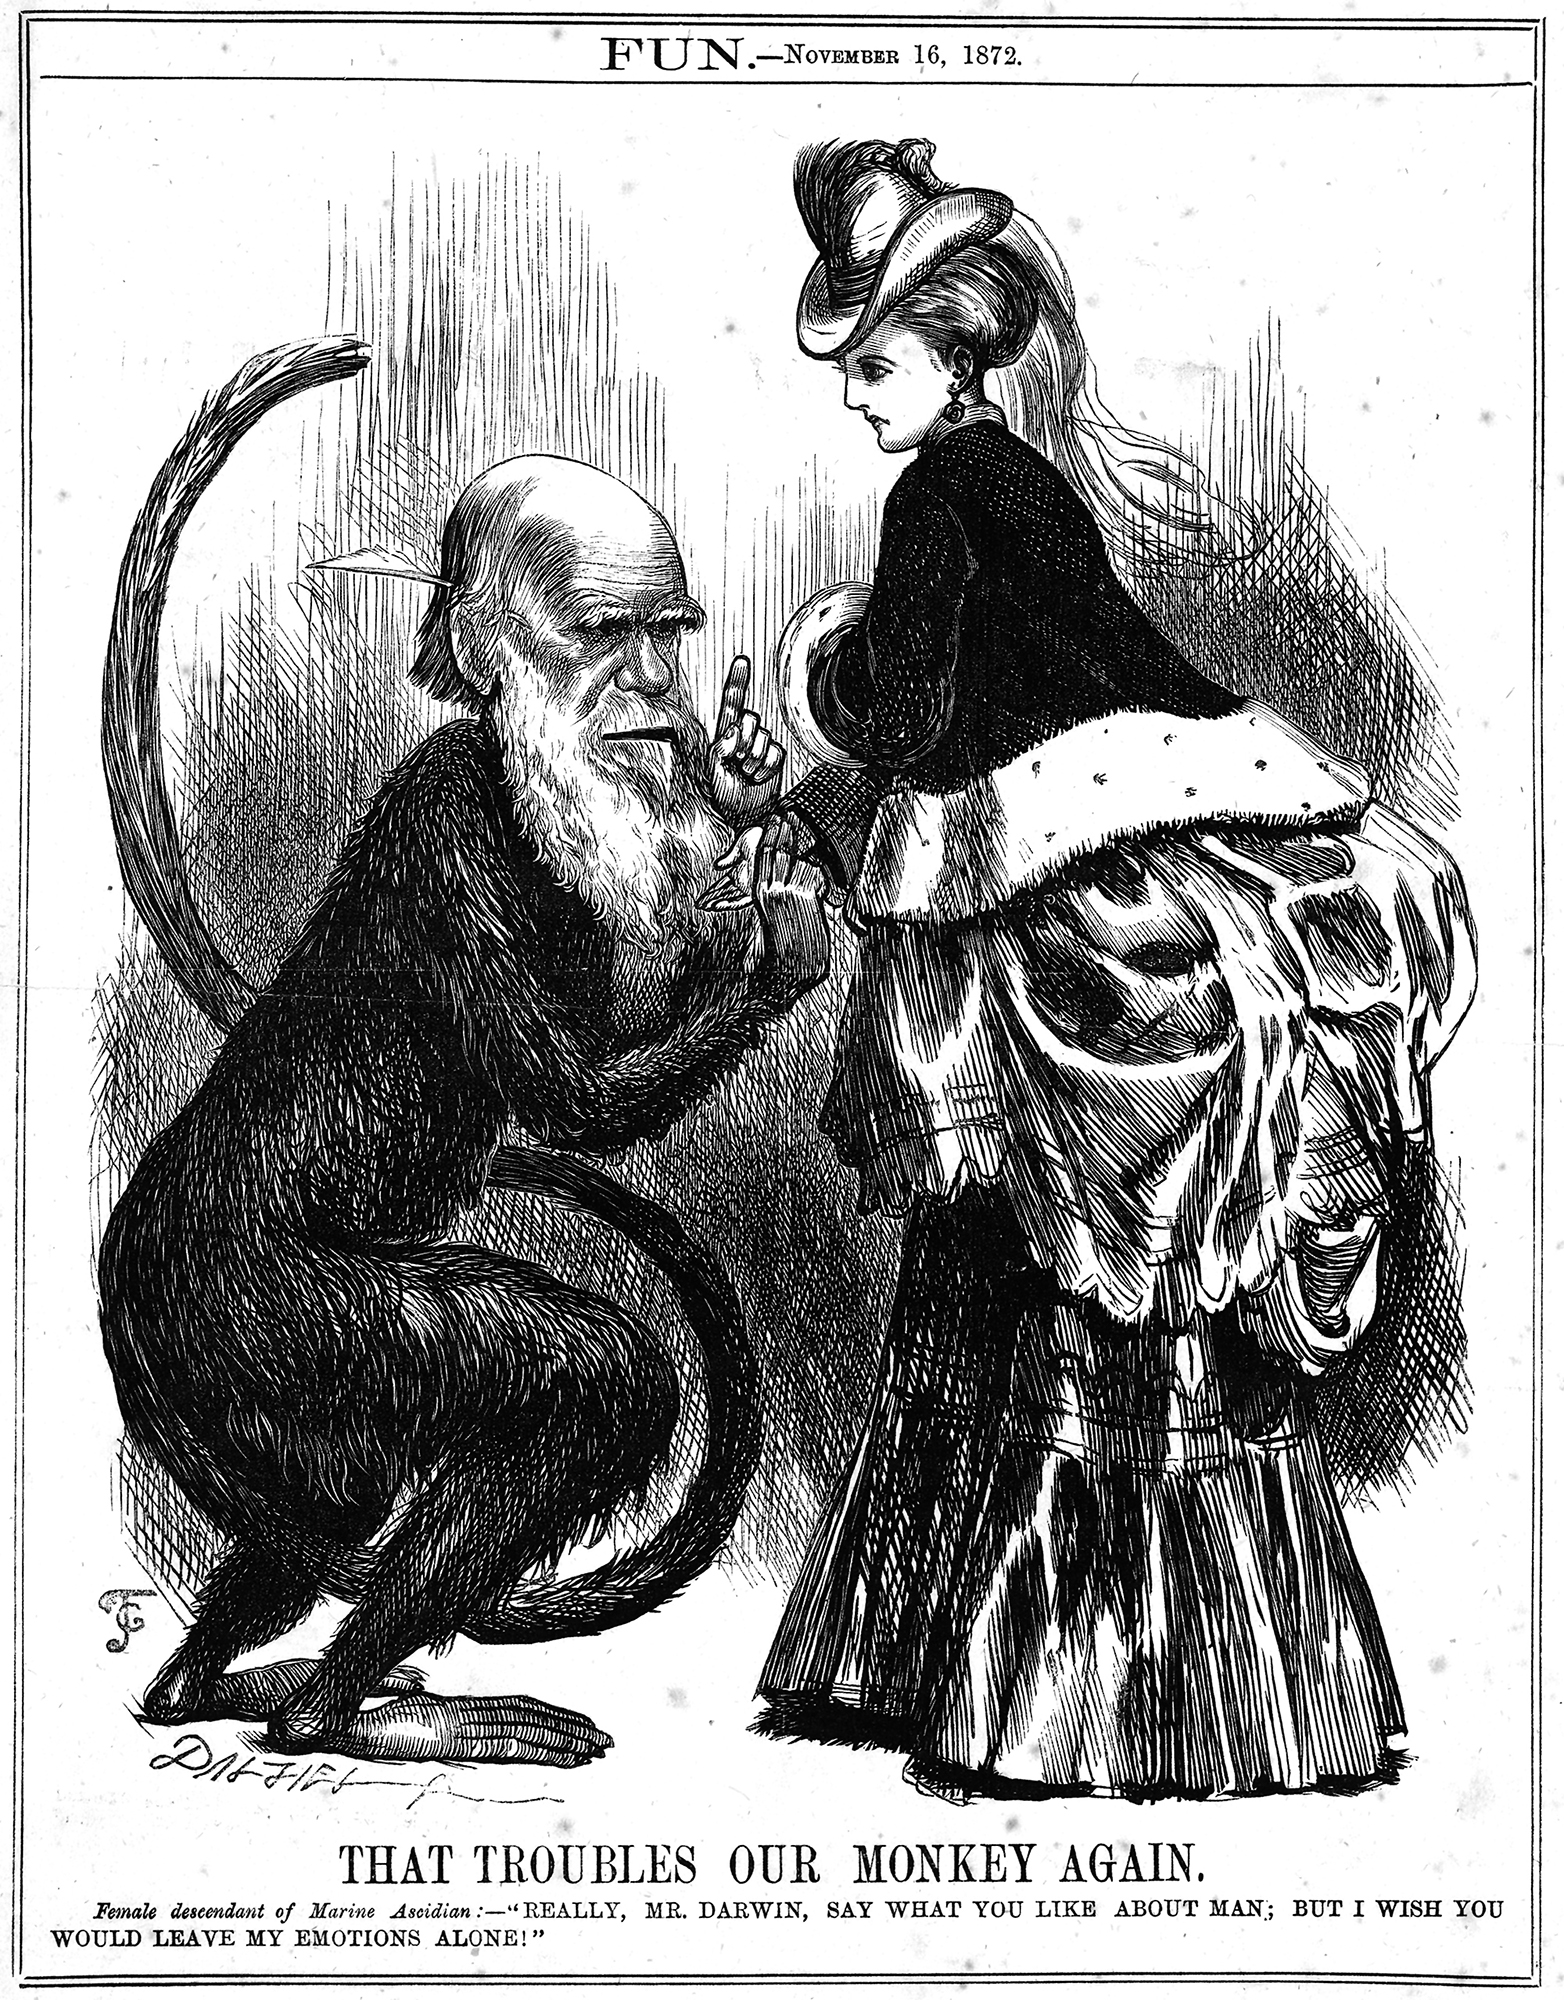 'That troubles our monkey again' caricature of Charles Darwin